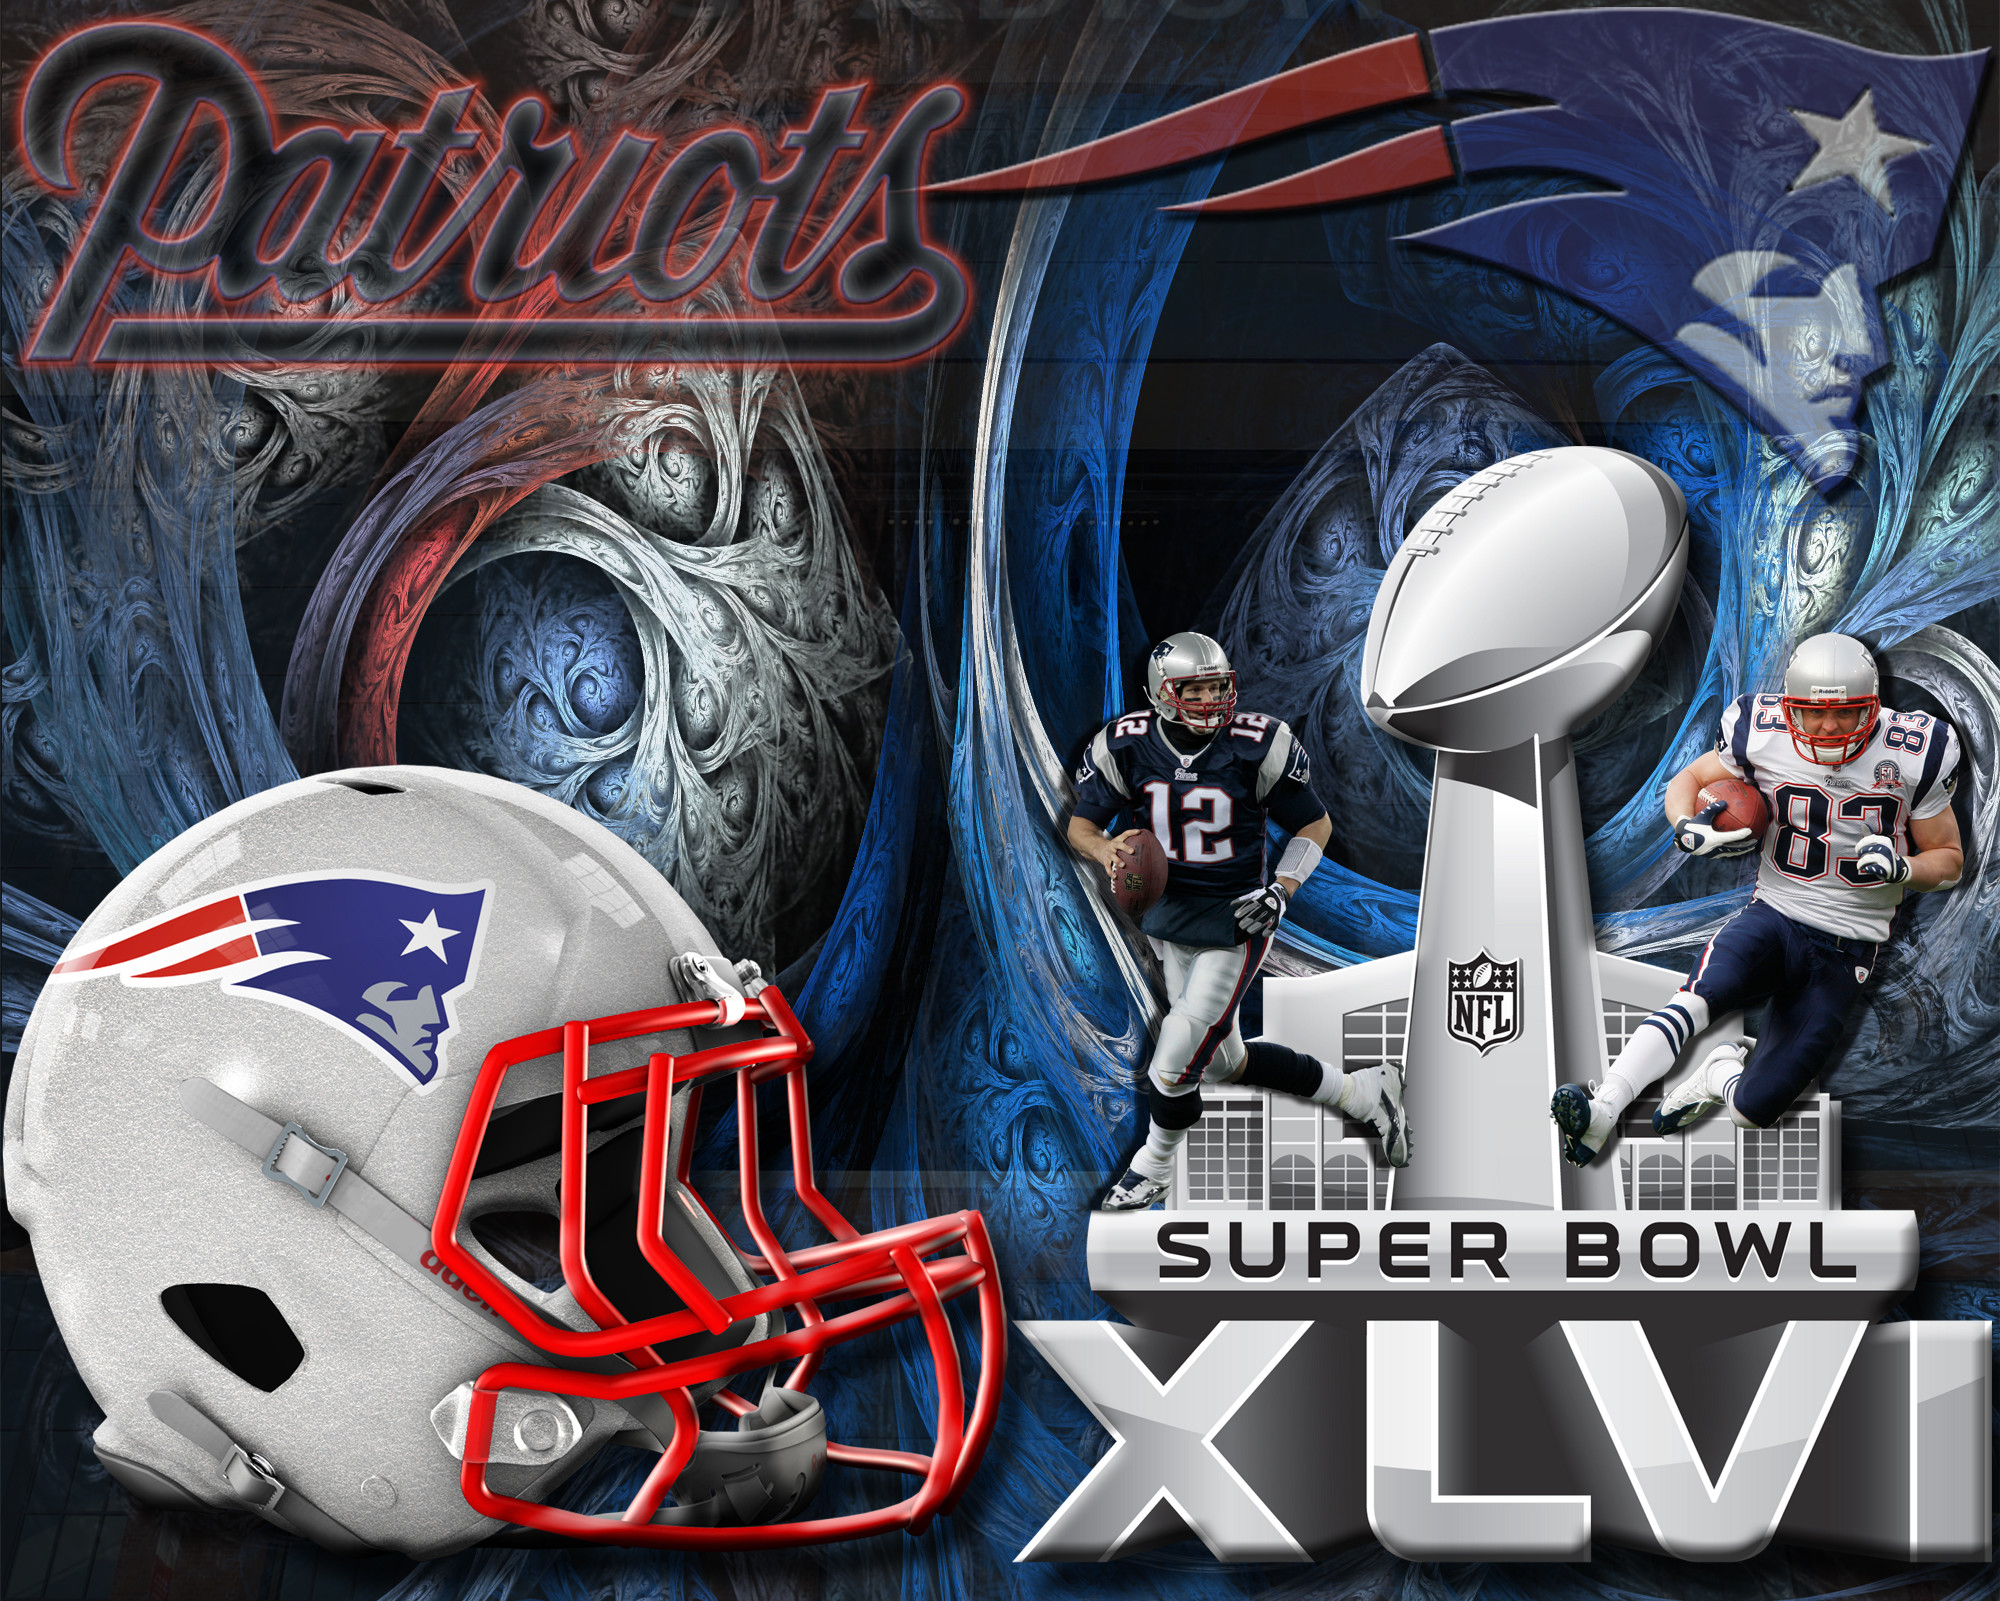 2000x1601 new england patriots wallpapers - www.high-definition-wallpaper.com